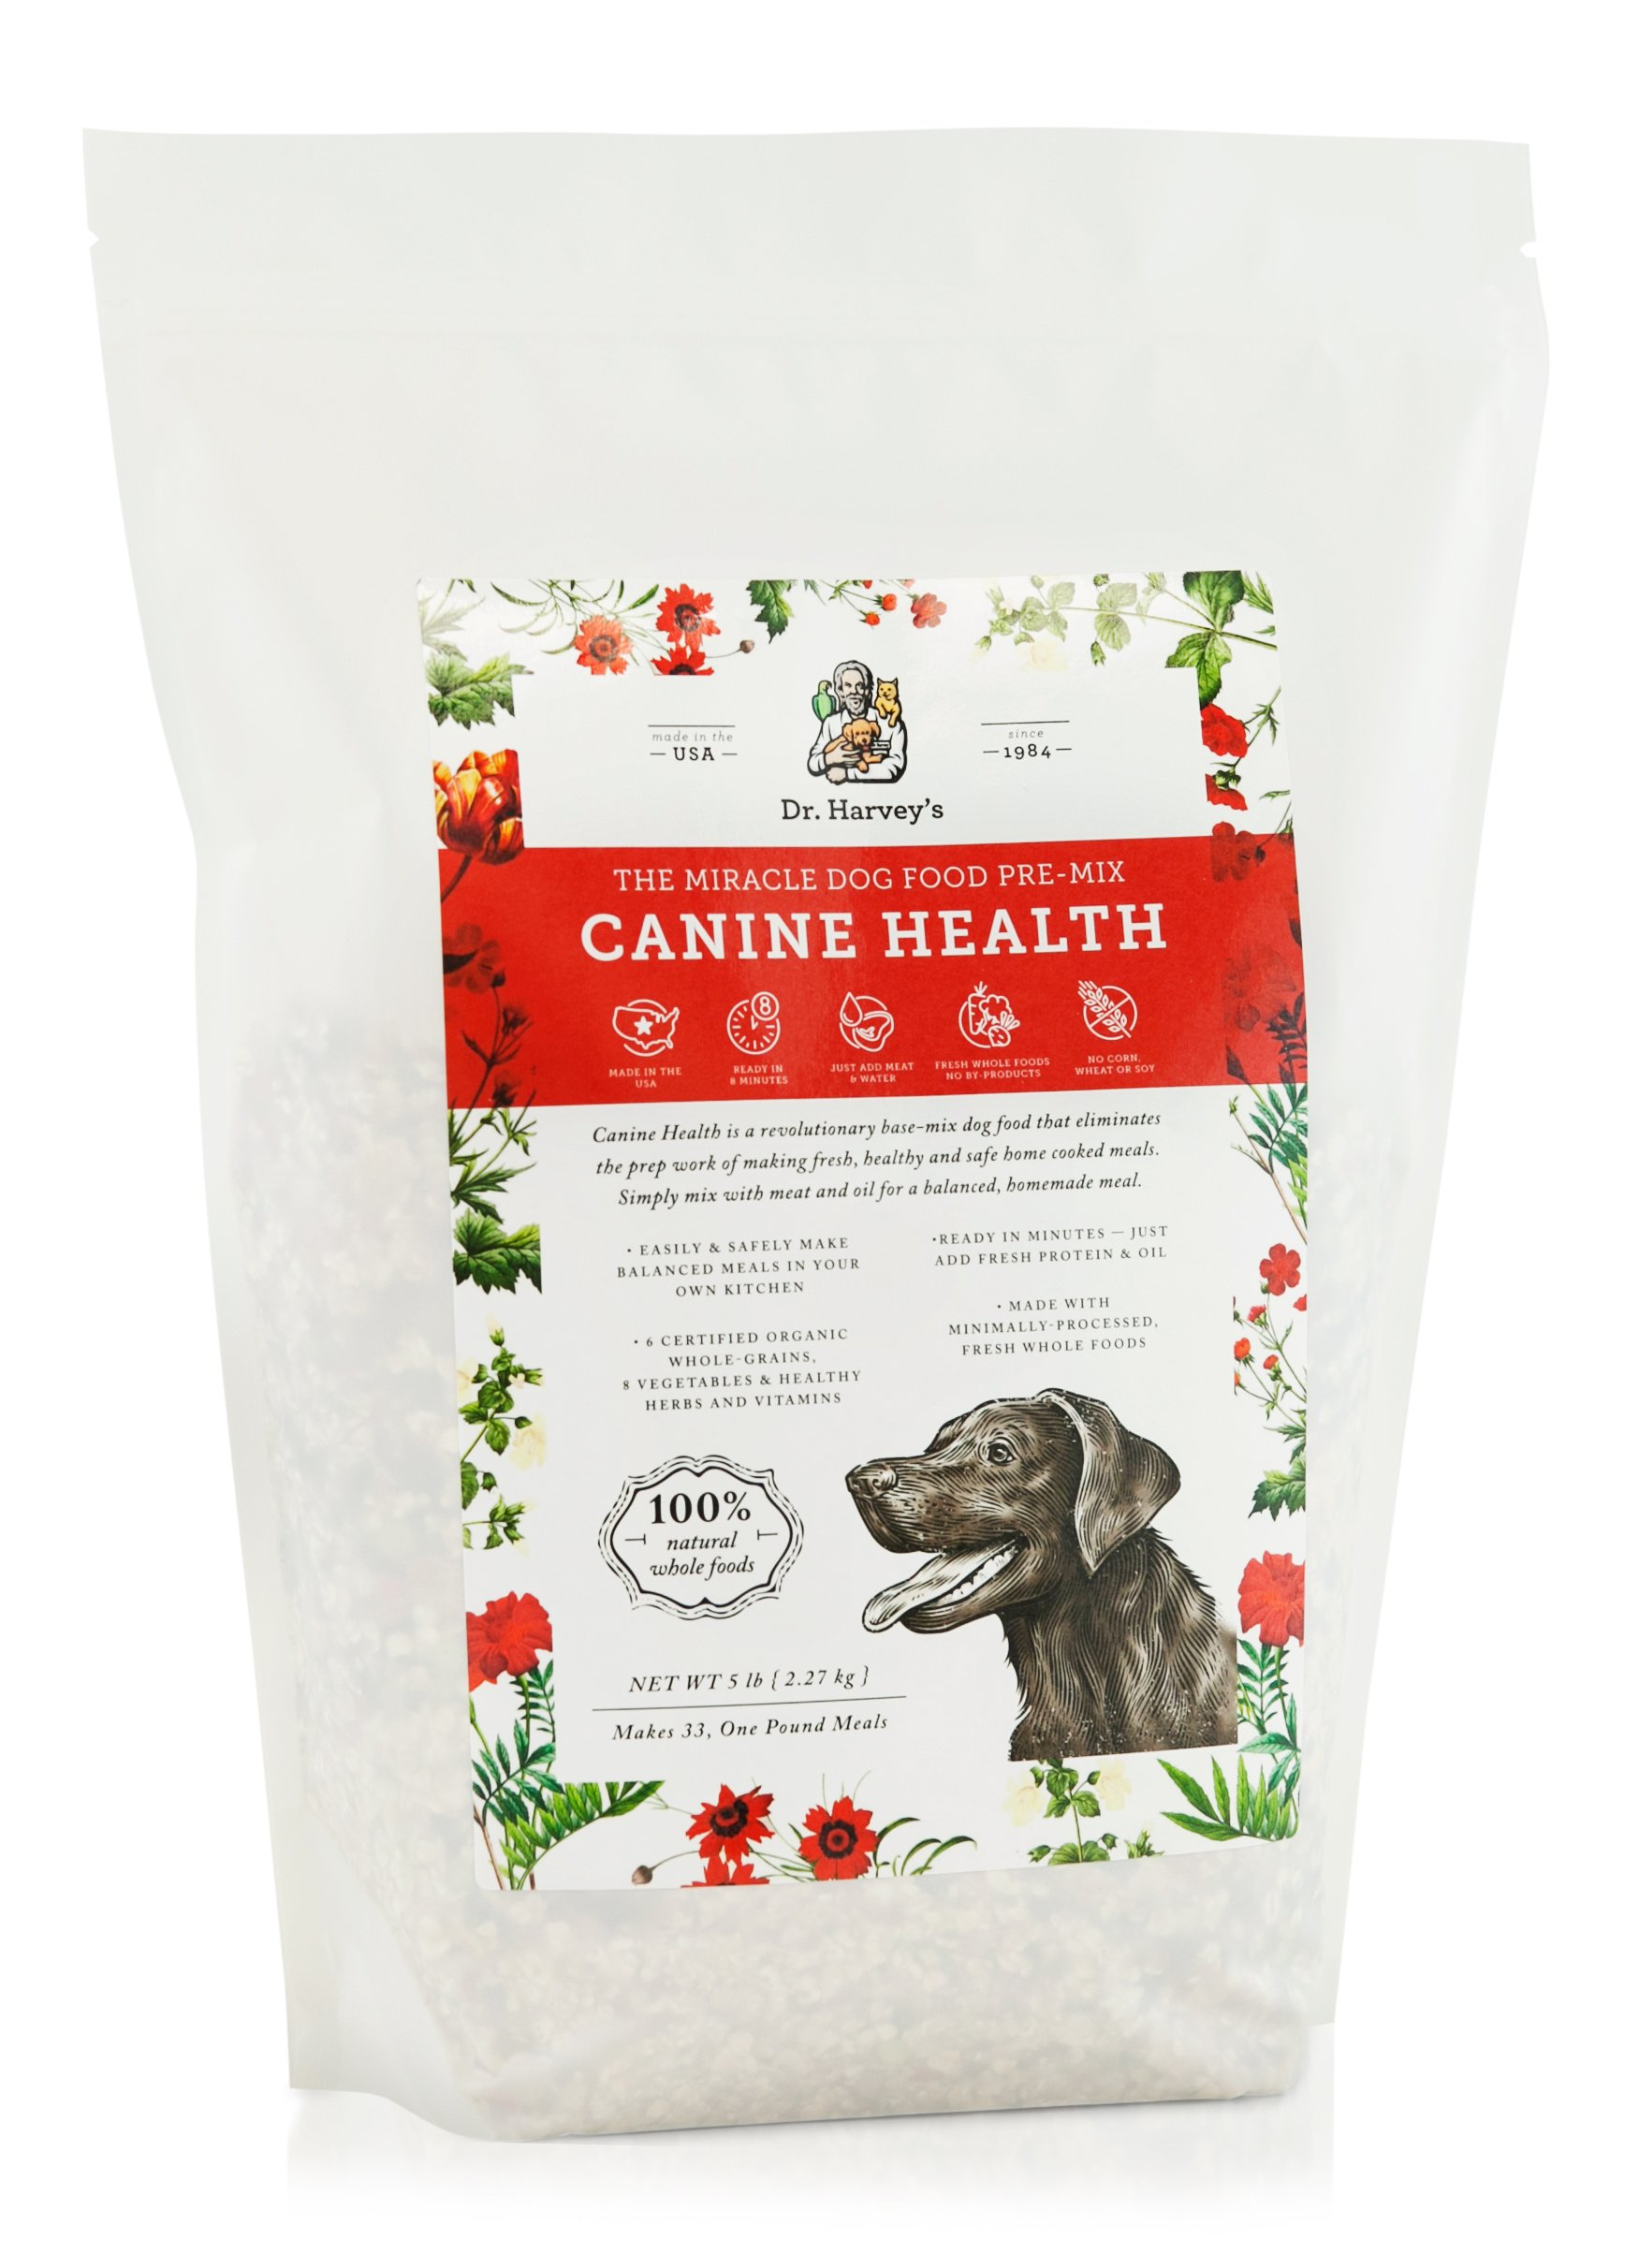 Dr. Harvey's Canine Health Miracle Dog Food, Human Grade Dehydrated Base Mix for Dogs with Organic Whole Grains and Vegetables (5 Pounds) by Dr. Harvey's